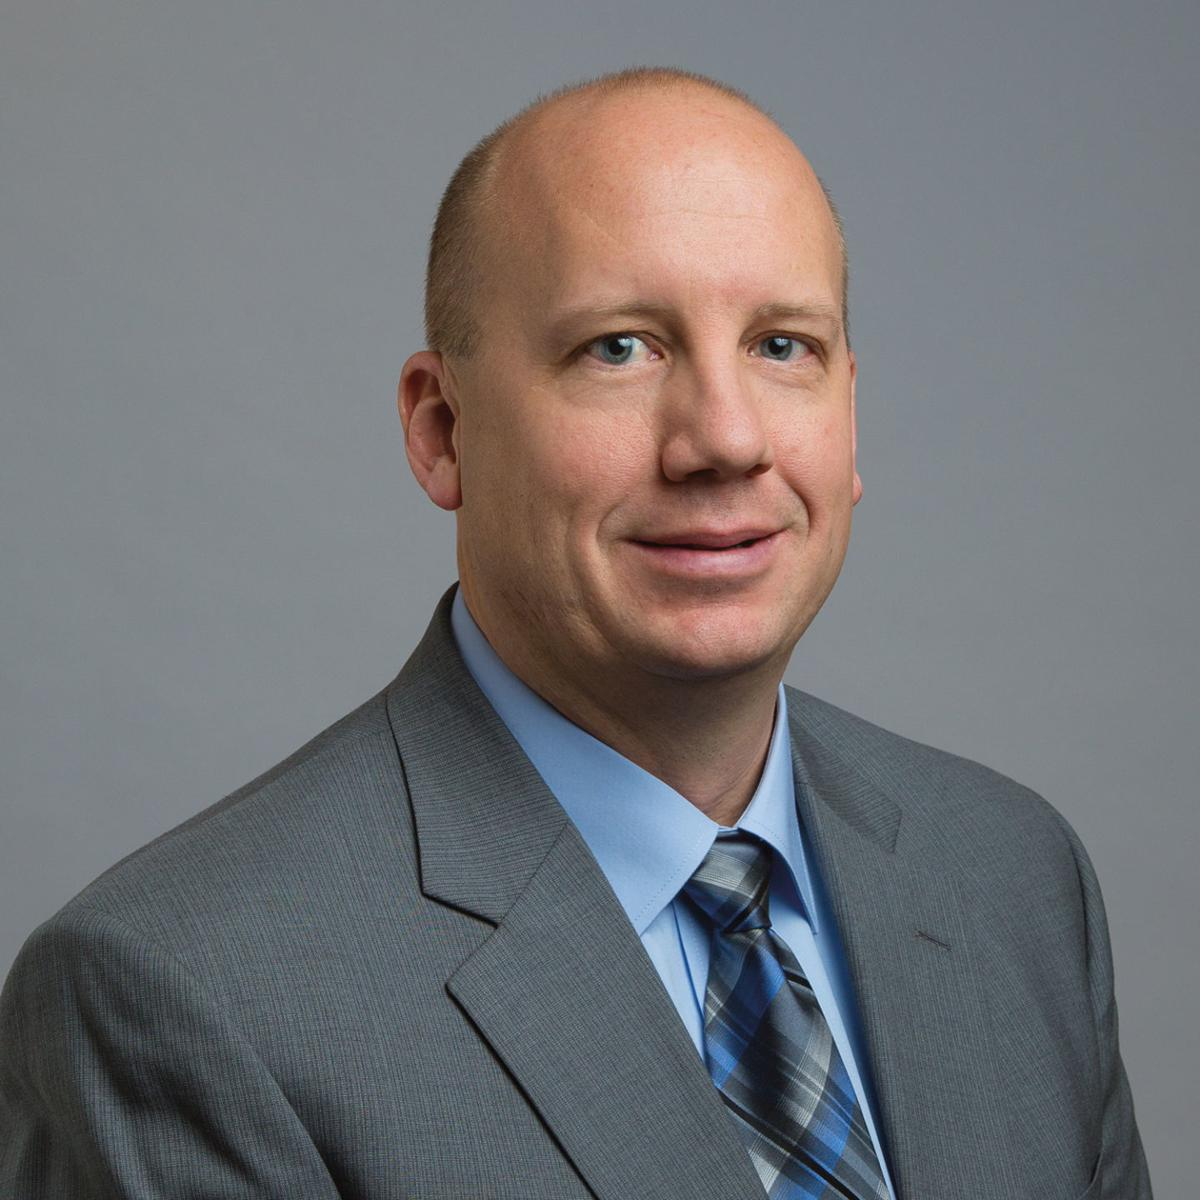 MGE president and CEO Jeff Keebler